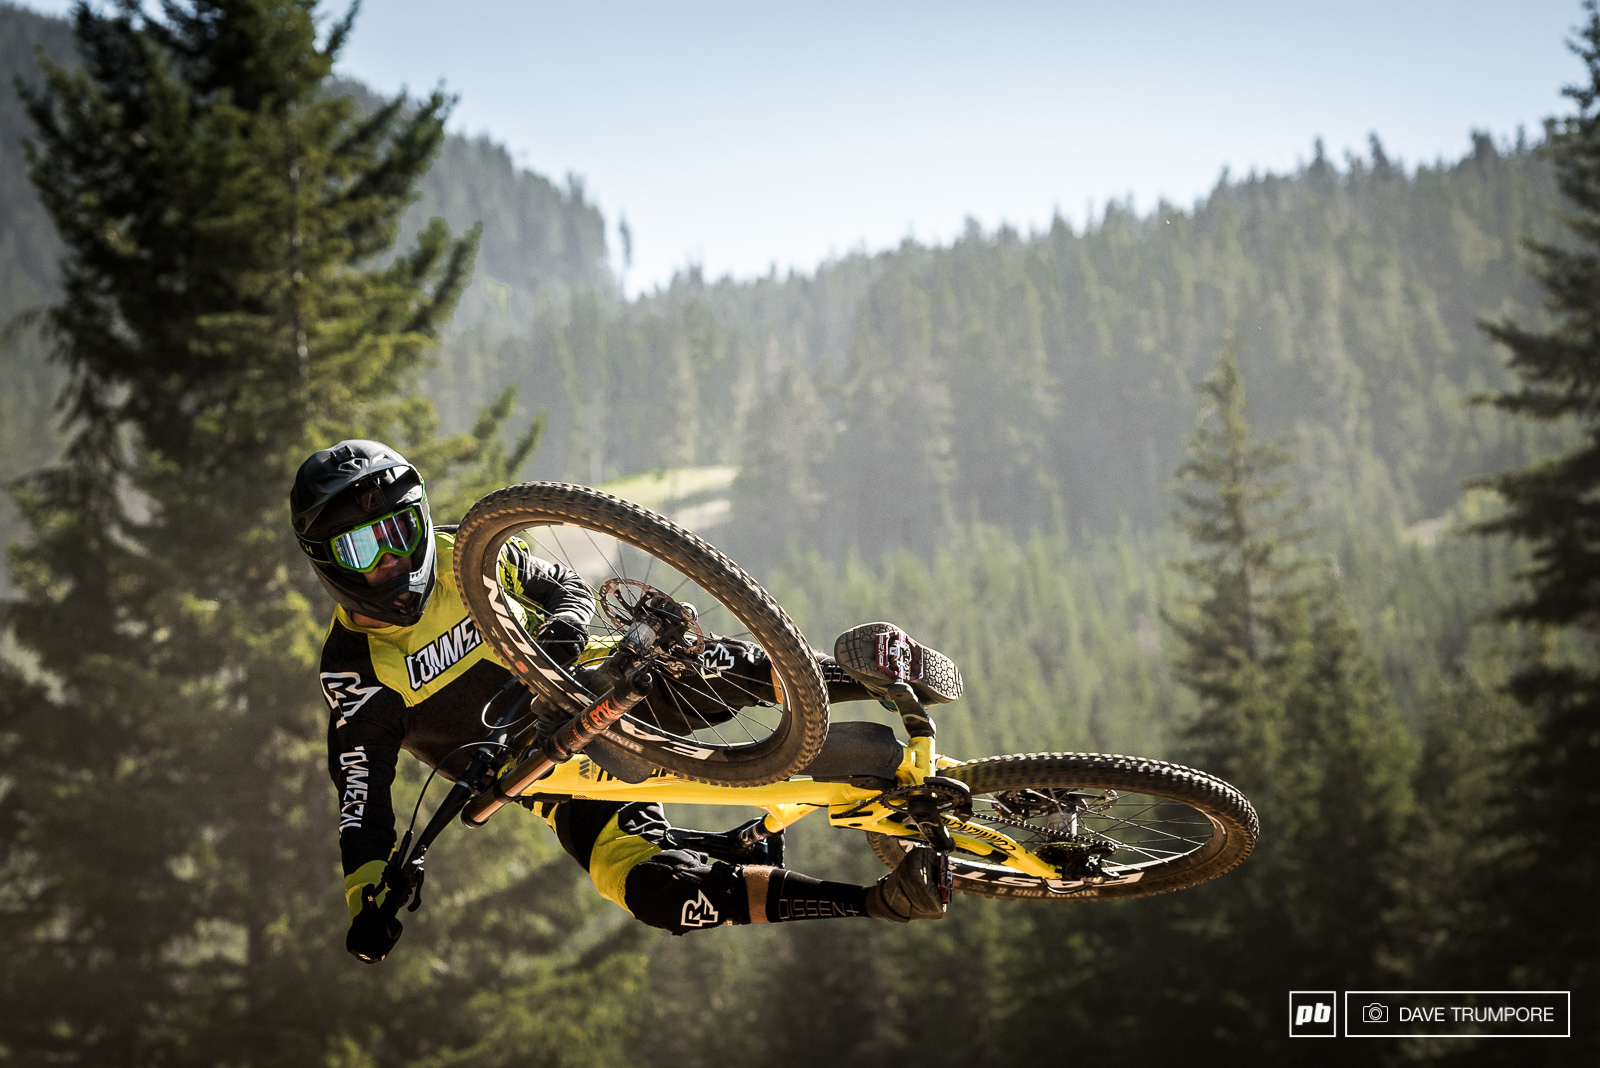 Remy Metailler is no stranger to getting sideways in the bike park.